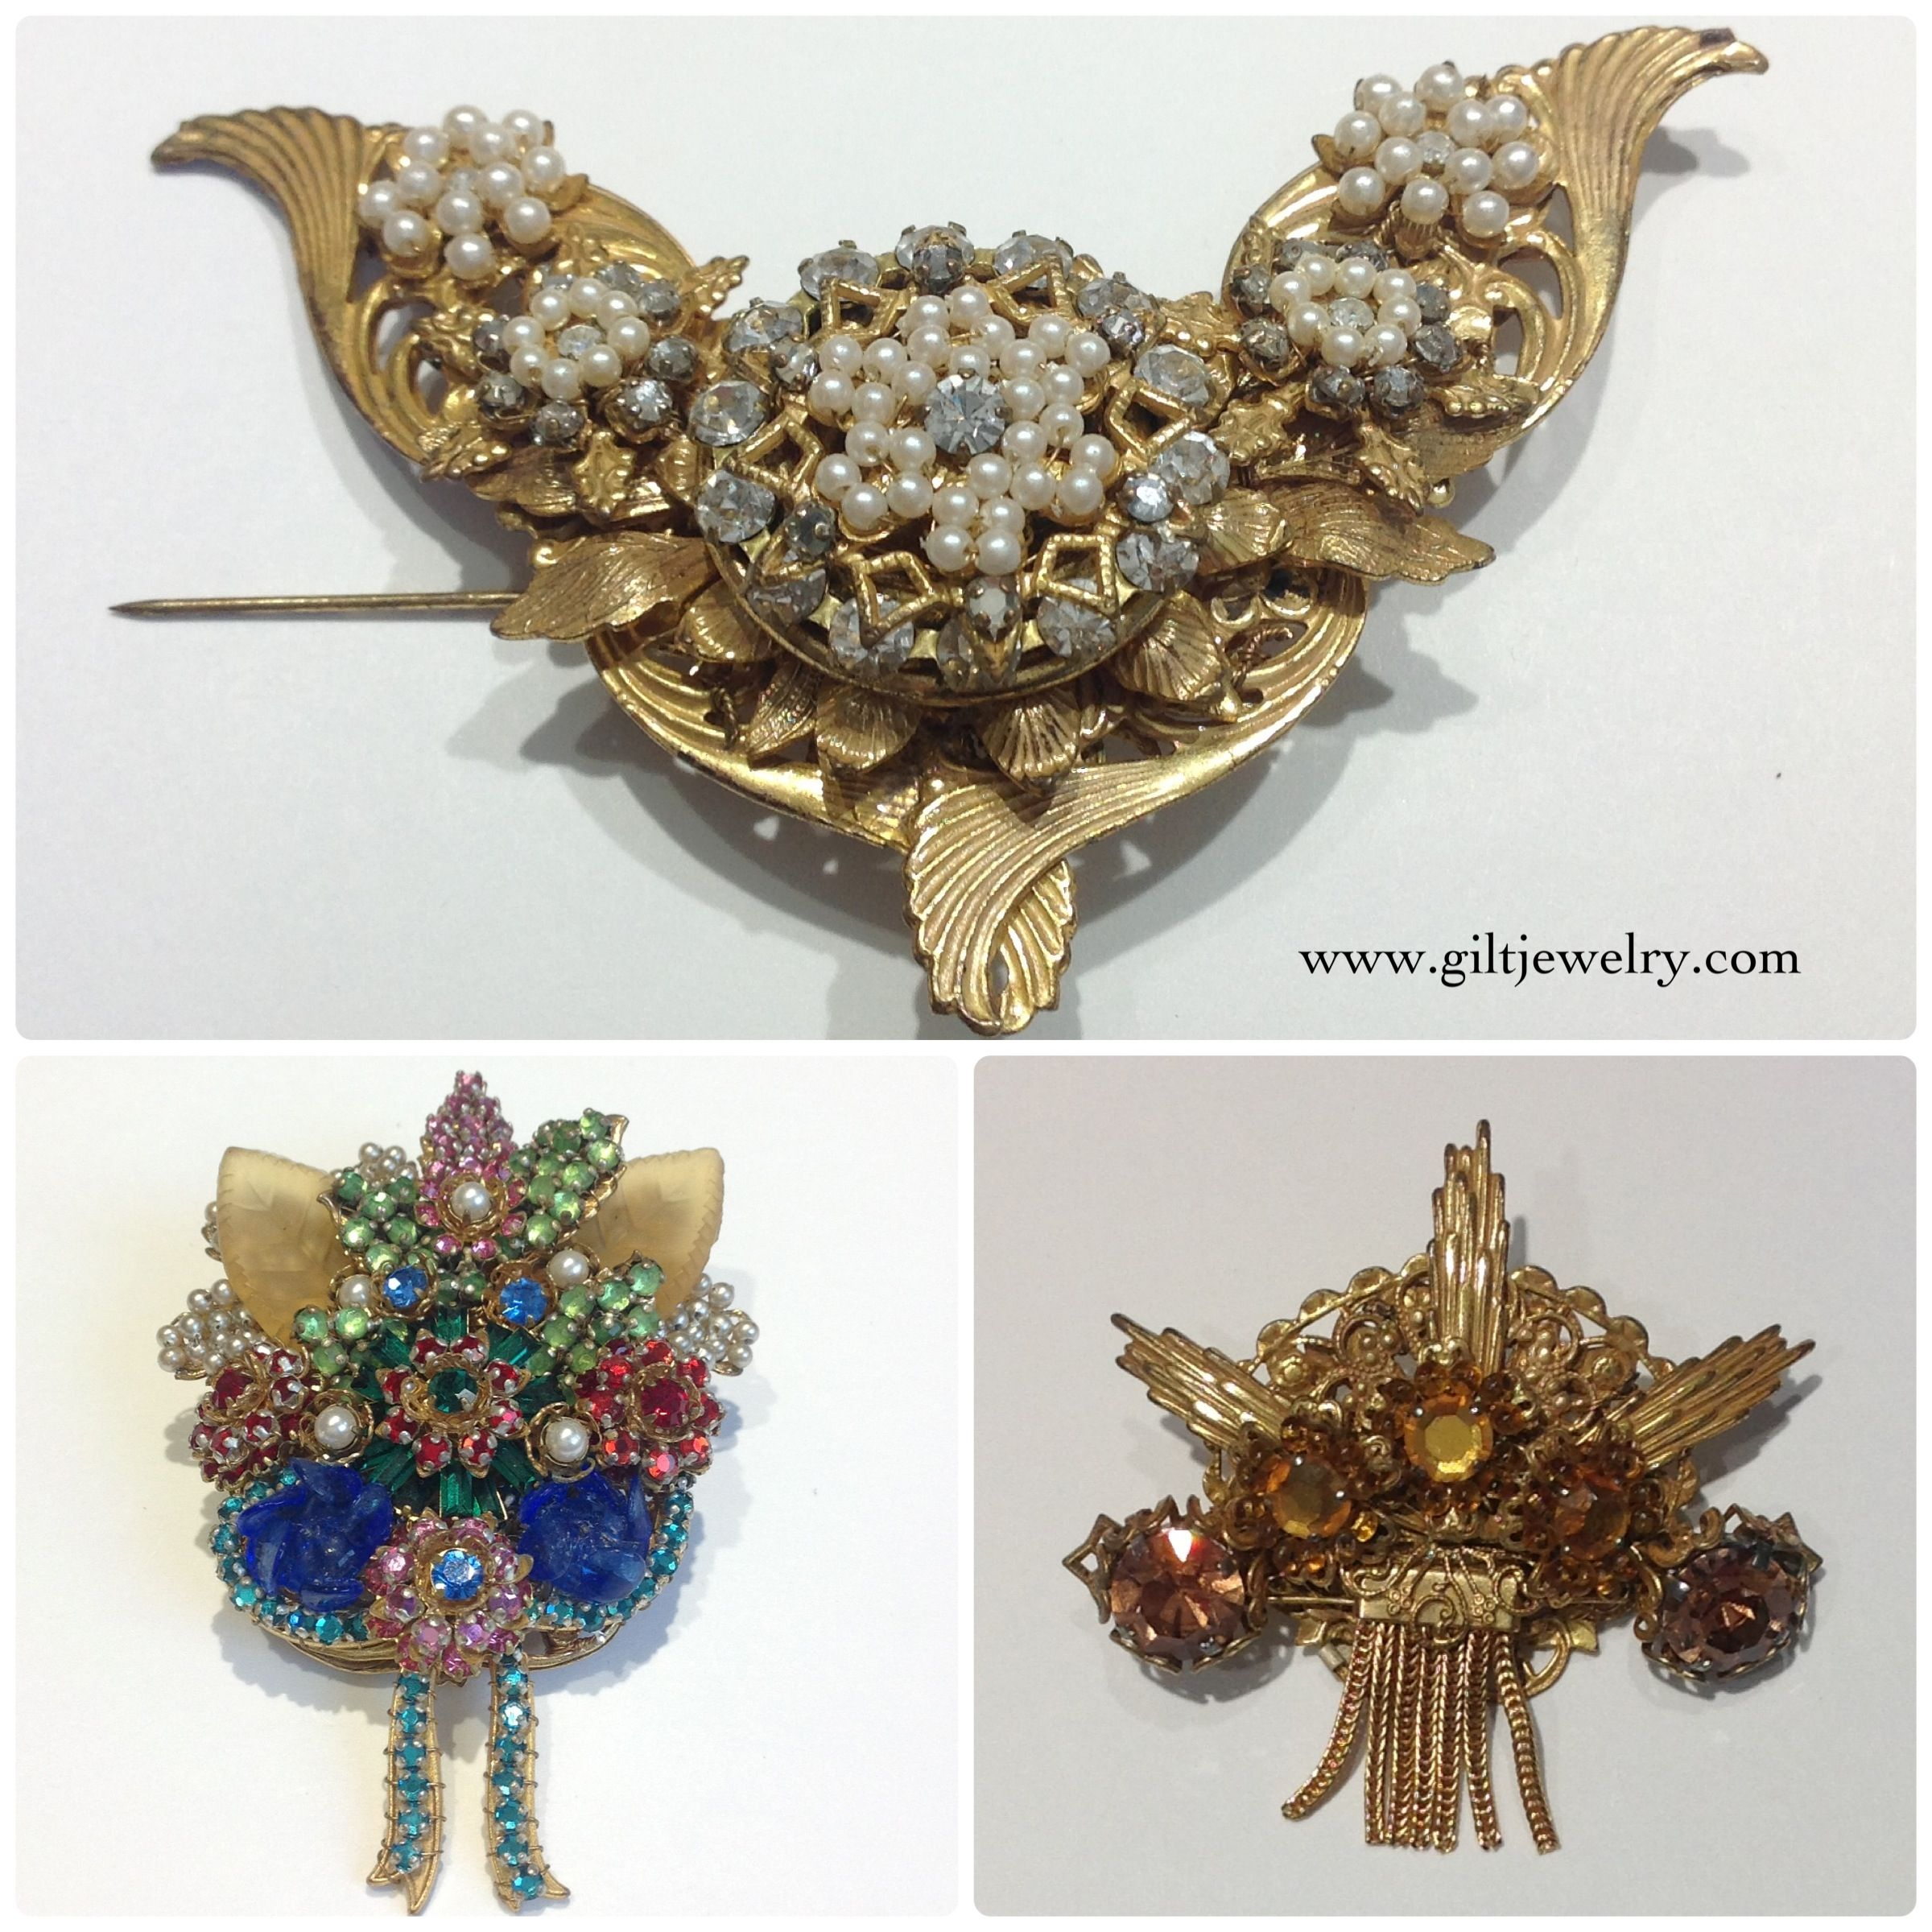 A collection of 1960s brooches by famed New York costume jewelry